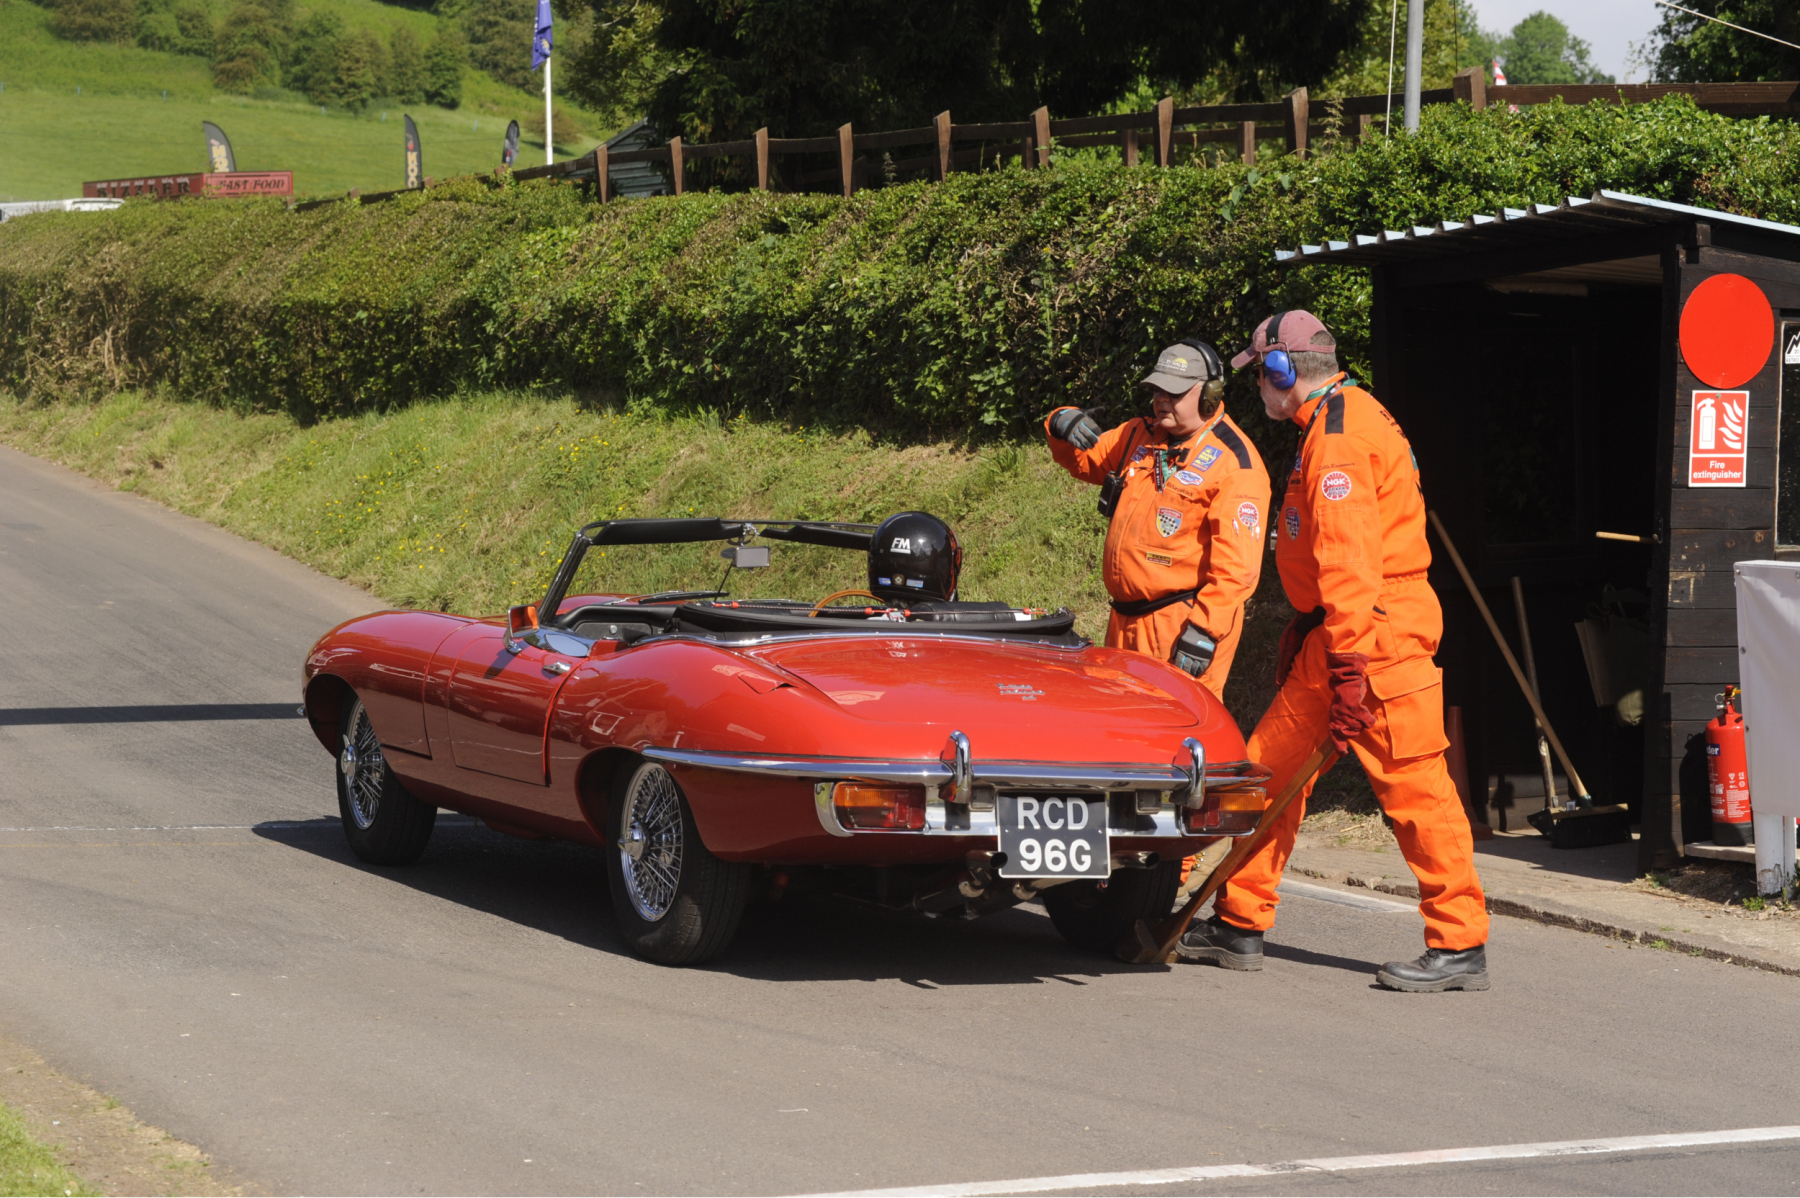 E-type-60-Saturday-photo-by-Abigail-Humphries-20